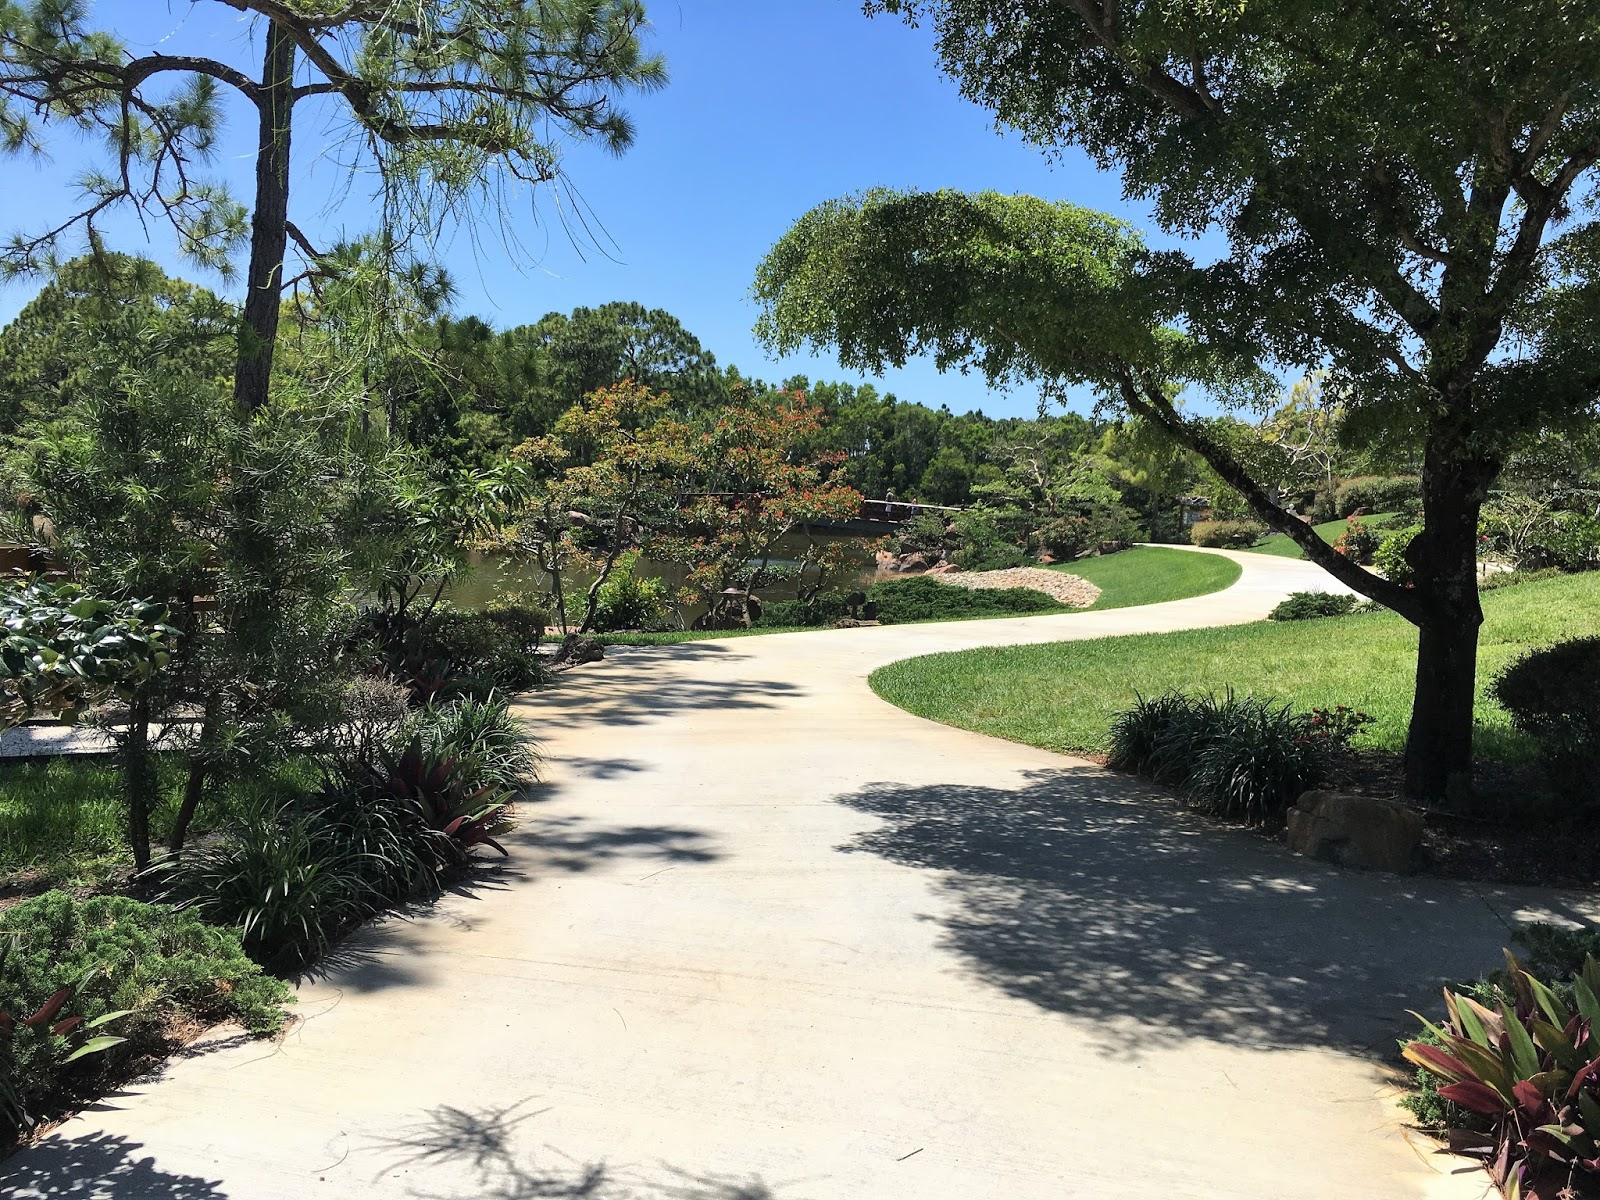 A Walk Through The Morikami Japanese Gardens Does Wonders For Calming Oneu0027s  Soul. Bridges And Paths Are Created In True Japanese Style With The Intent  To ...